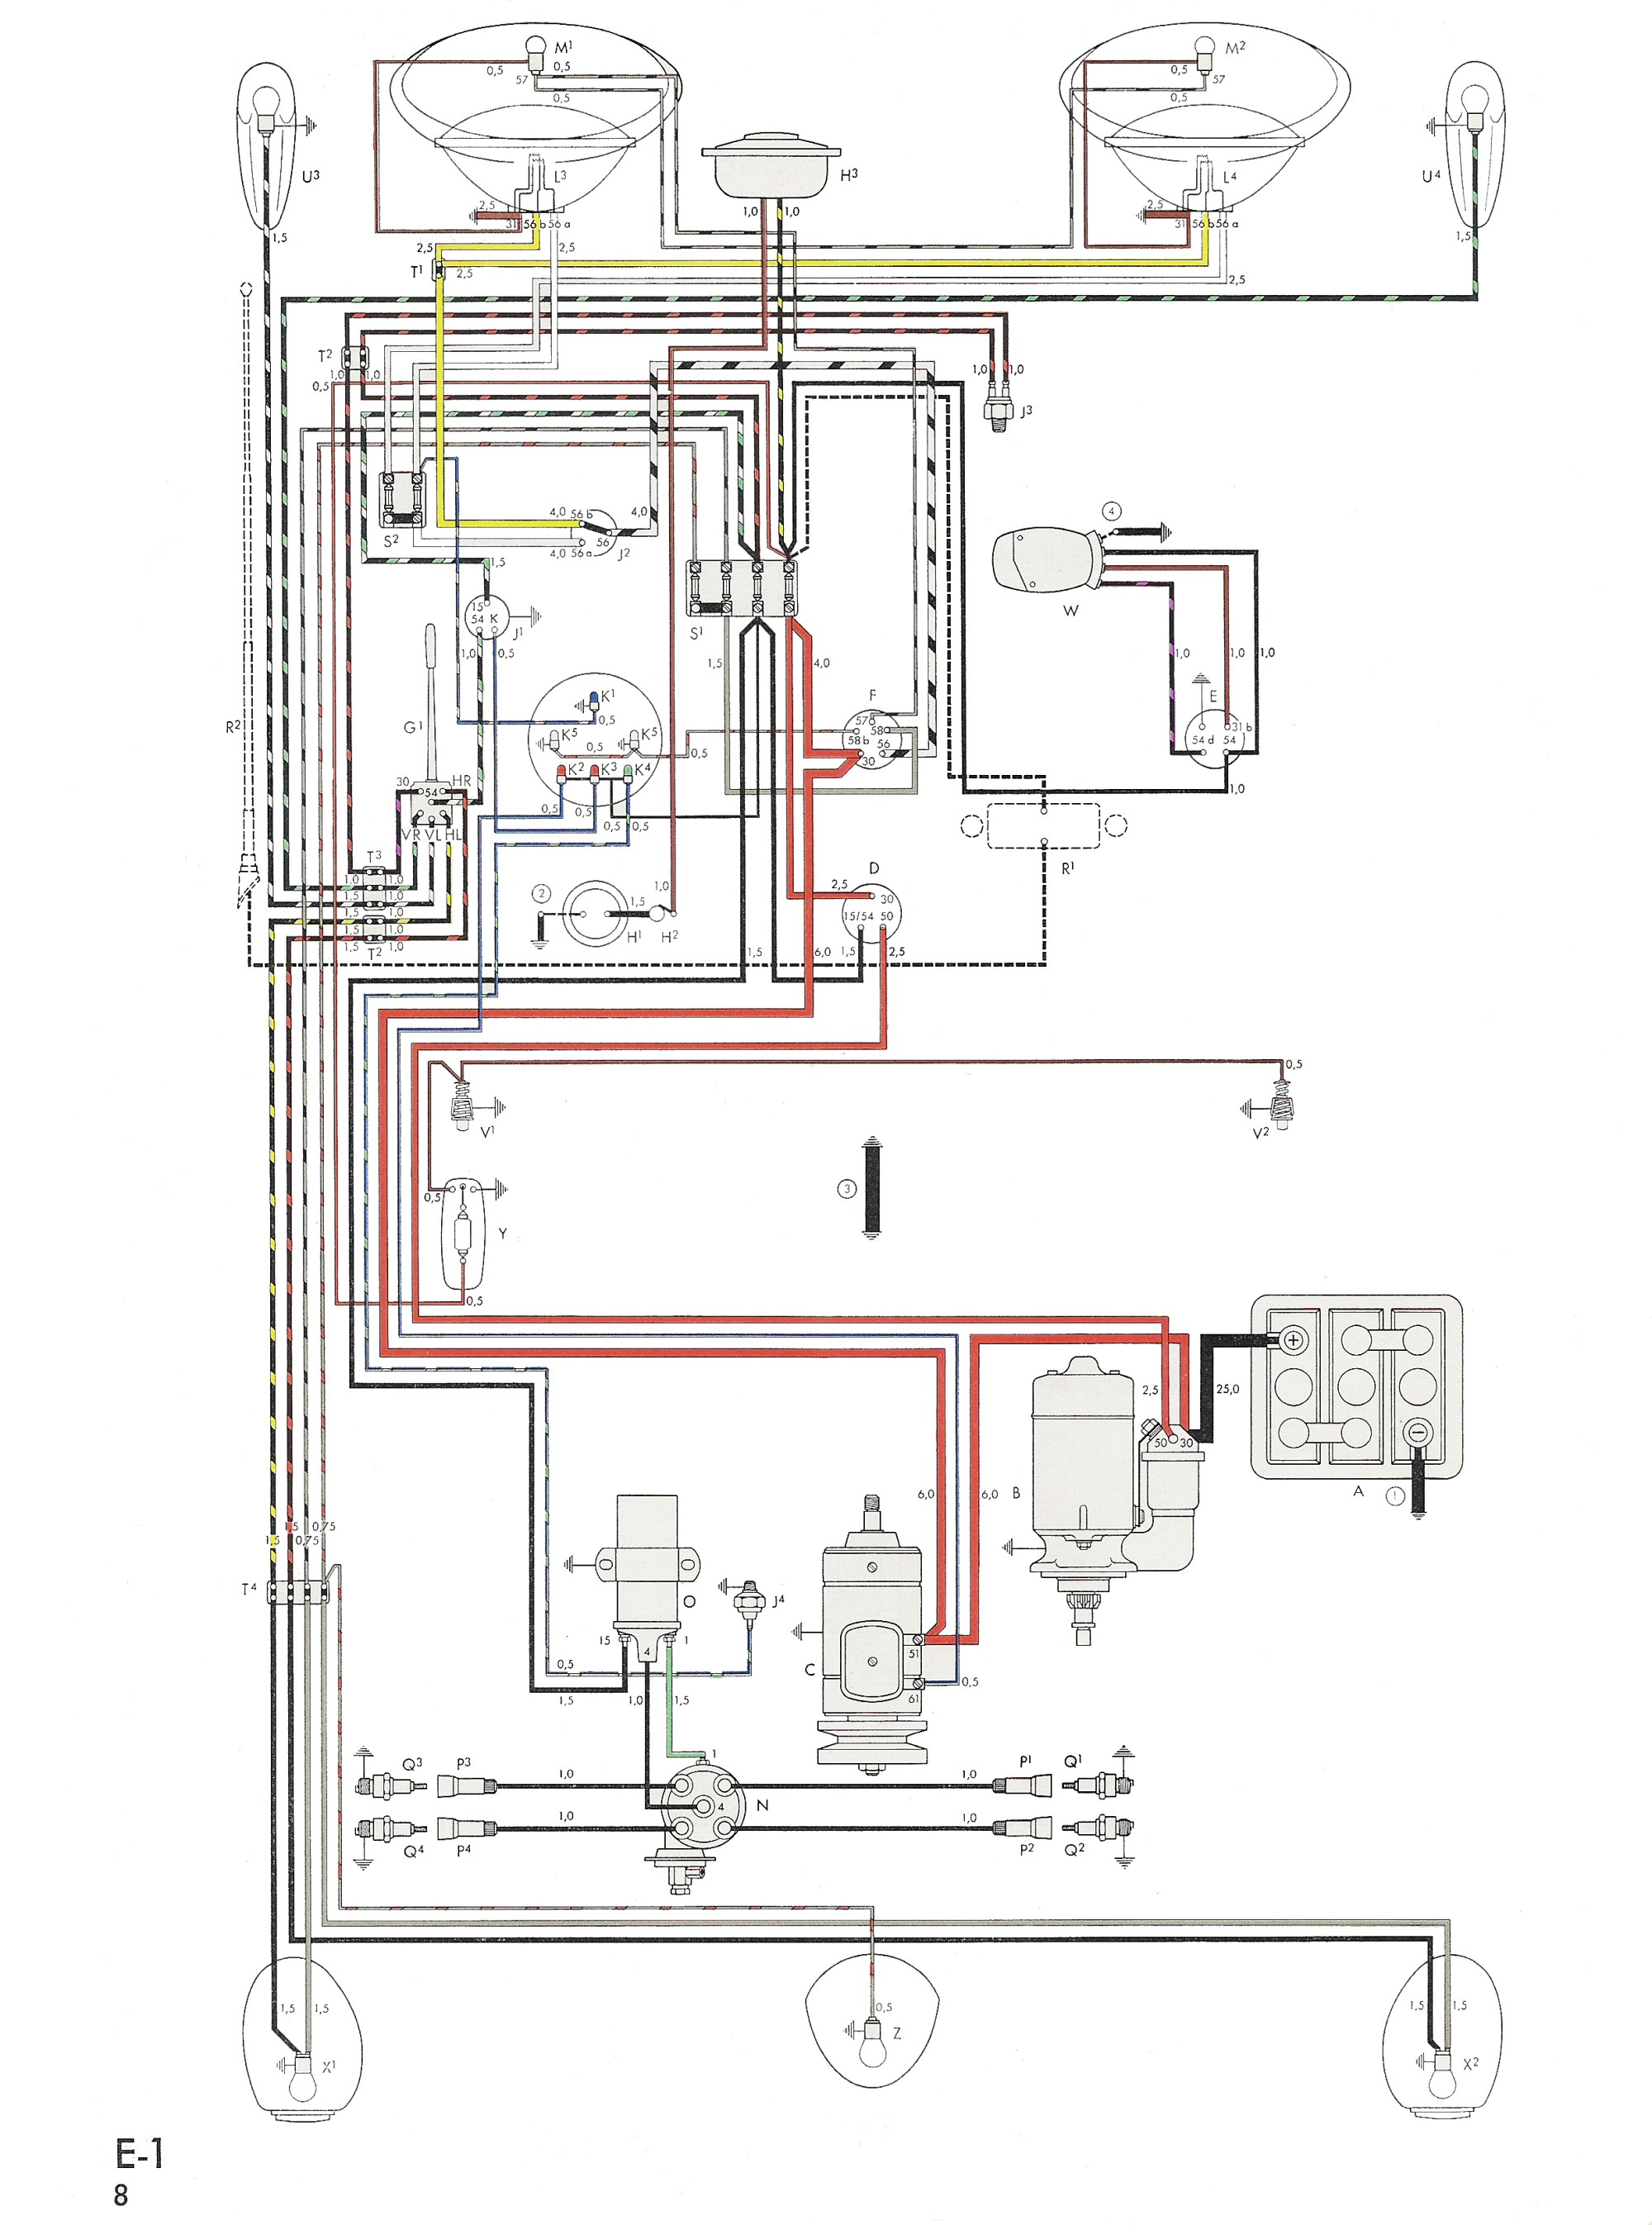 hight resolution of 1999 eurovan camper wiring diagram detailed schematics diagram rh jppastryarts com 1999 vw eurovan camper 1999